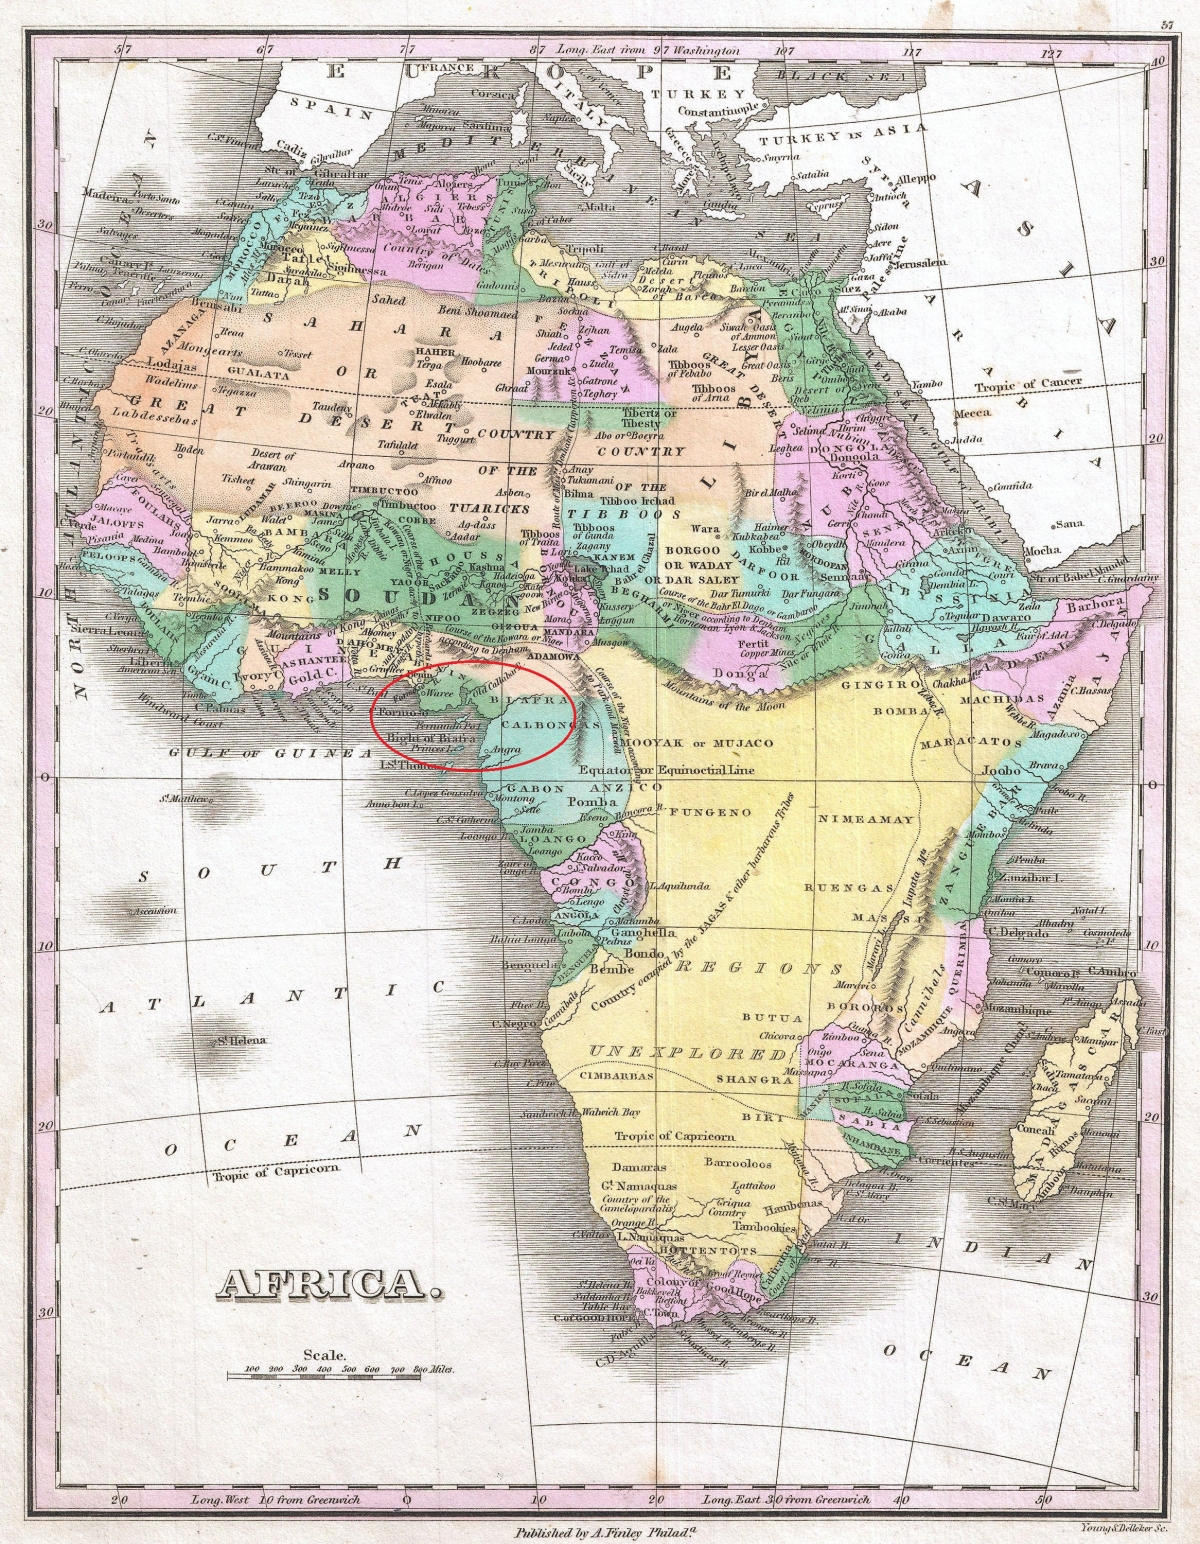 Africa Biafra map